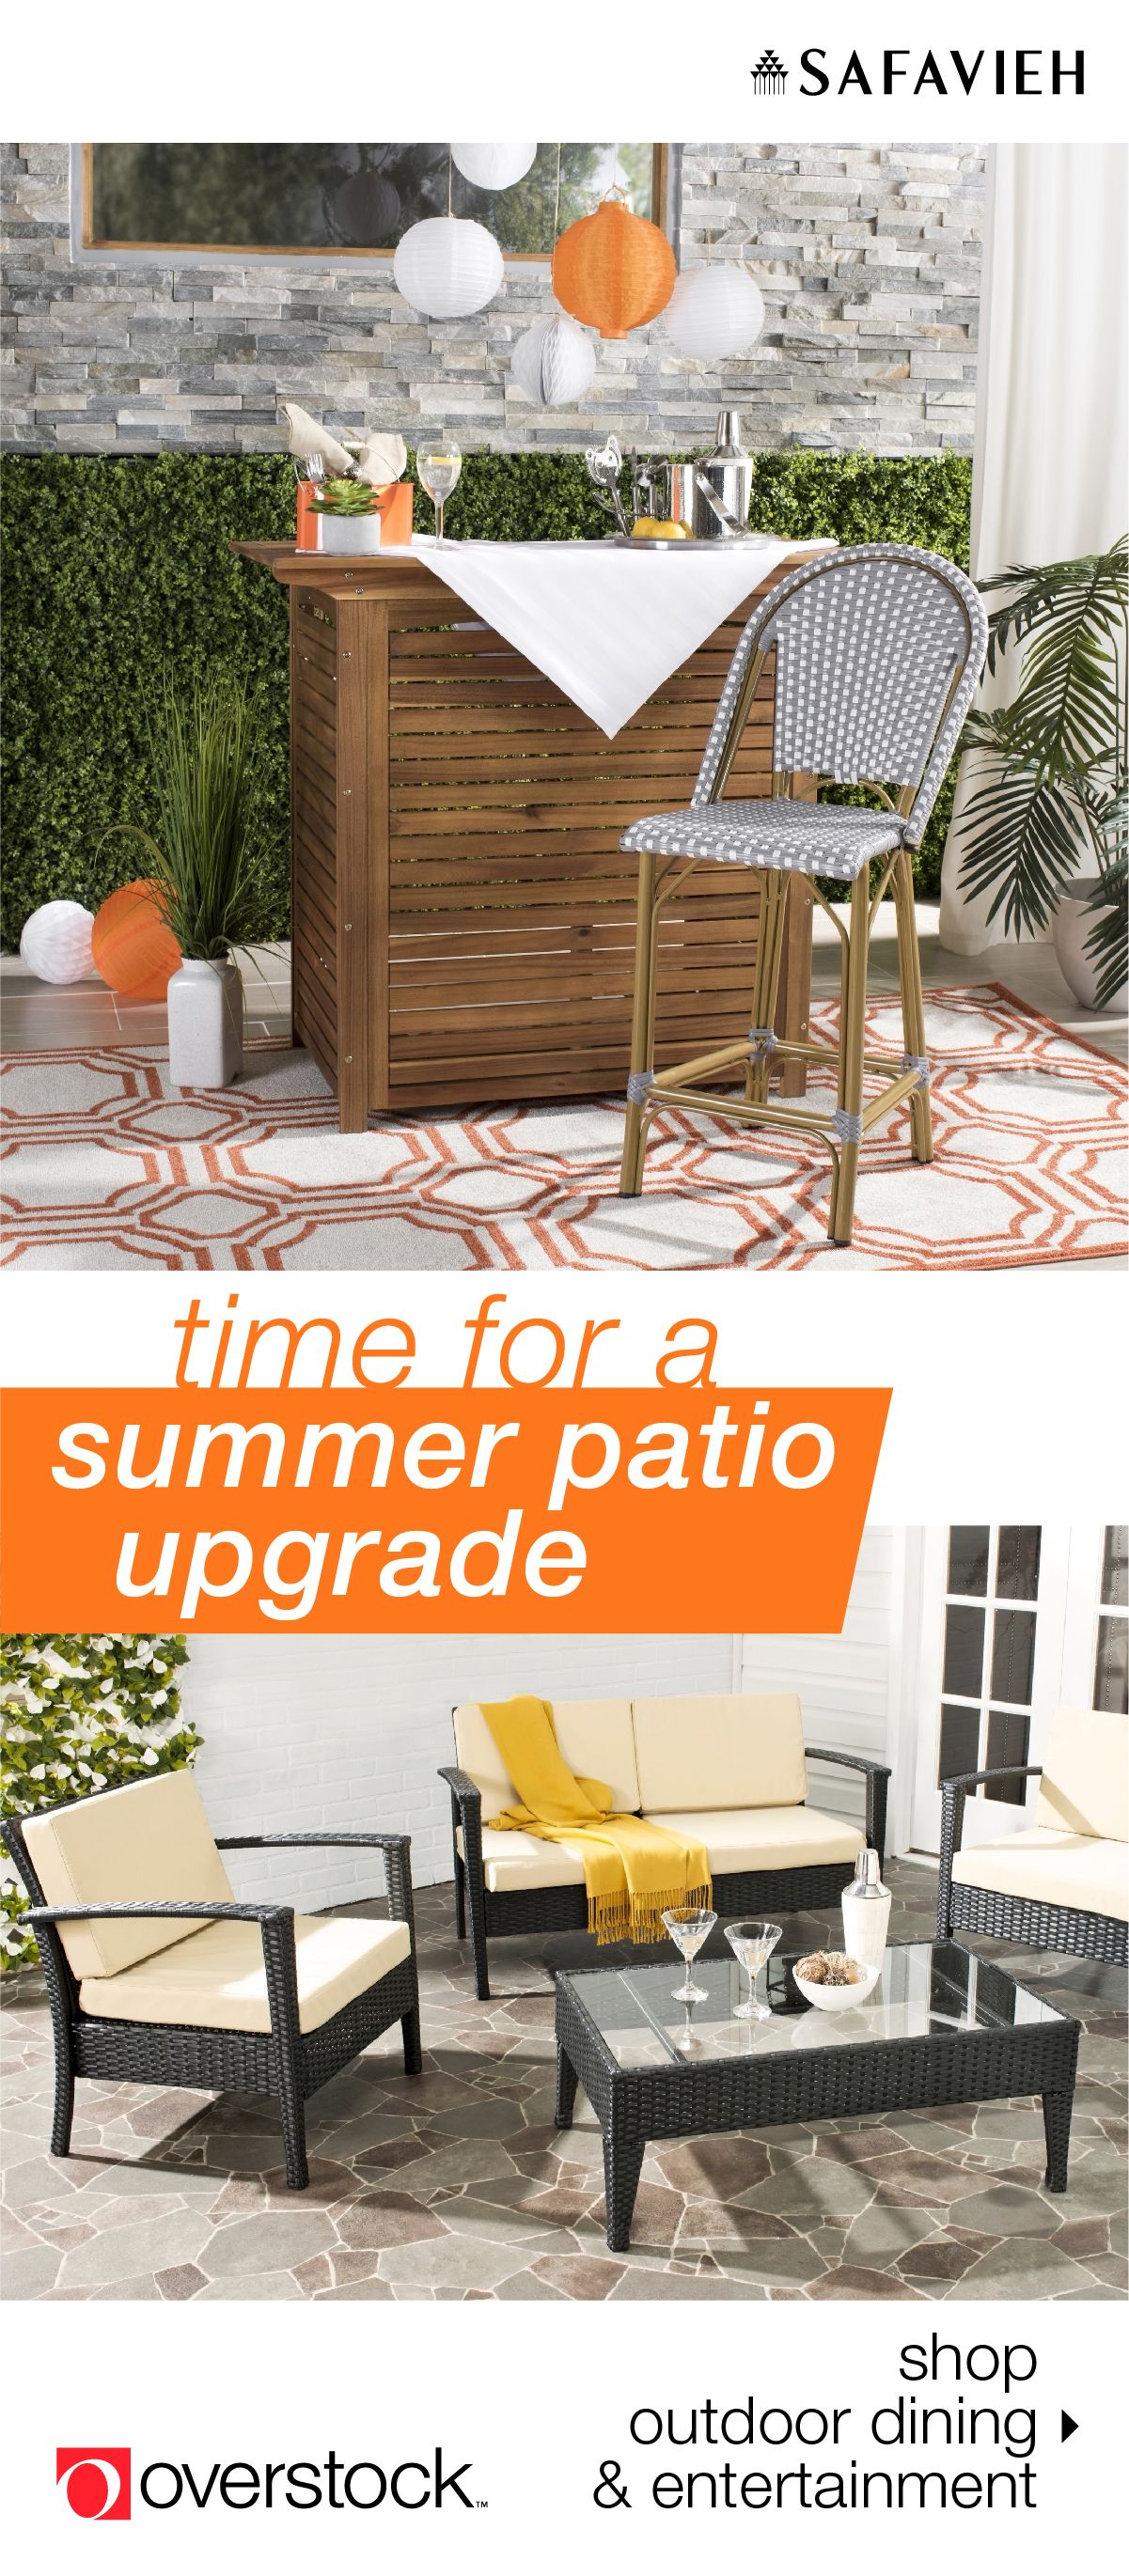 Safavieh Patio Furniture For Your Backyard Paradise Outdoor